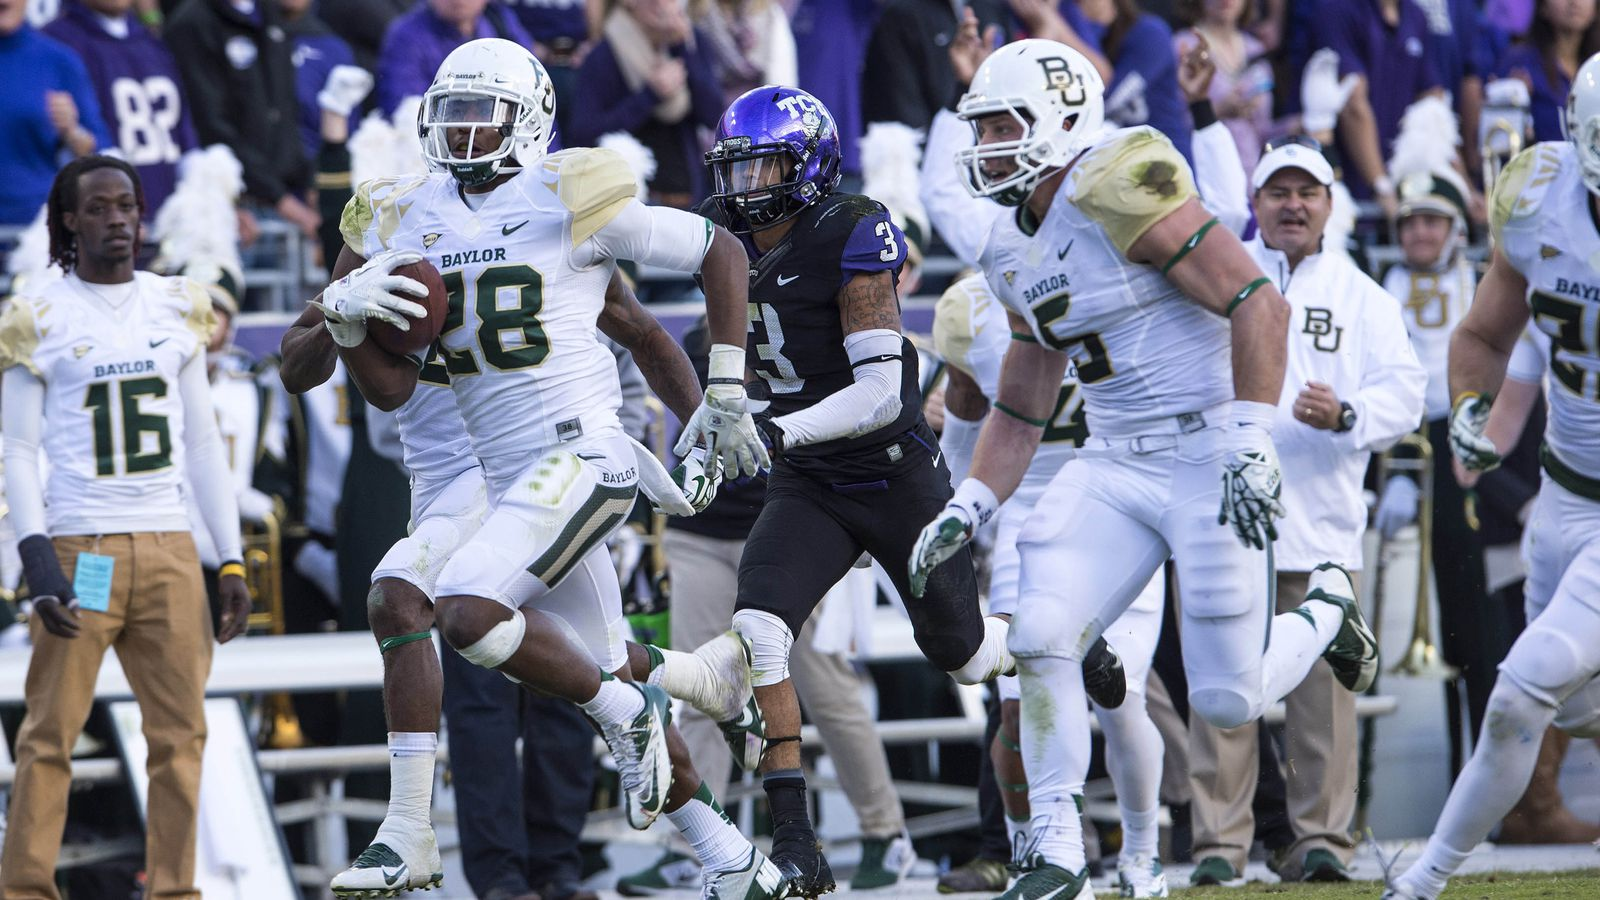 Baylor vs  TCU results: Bears hang on for 41-38 win over